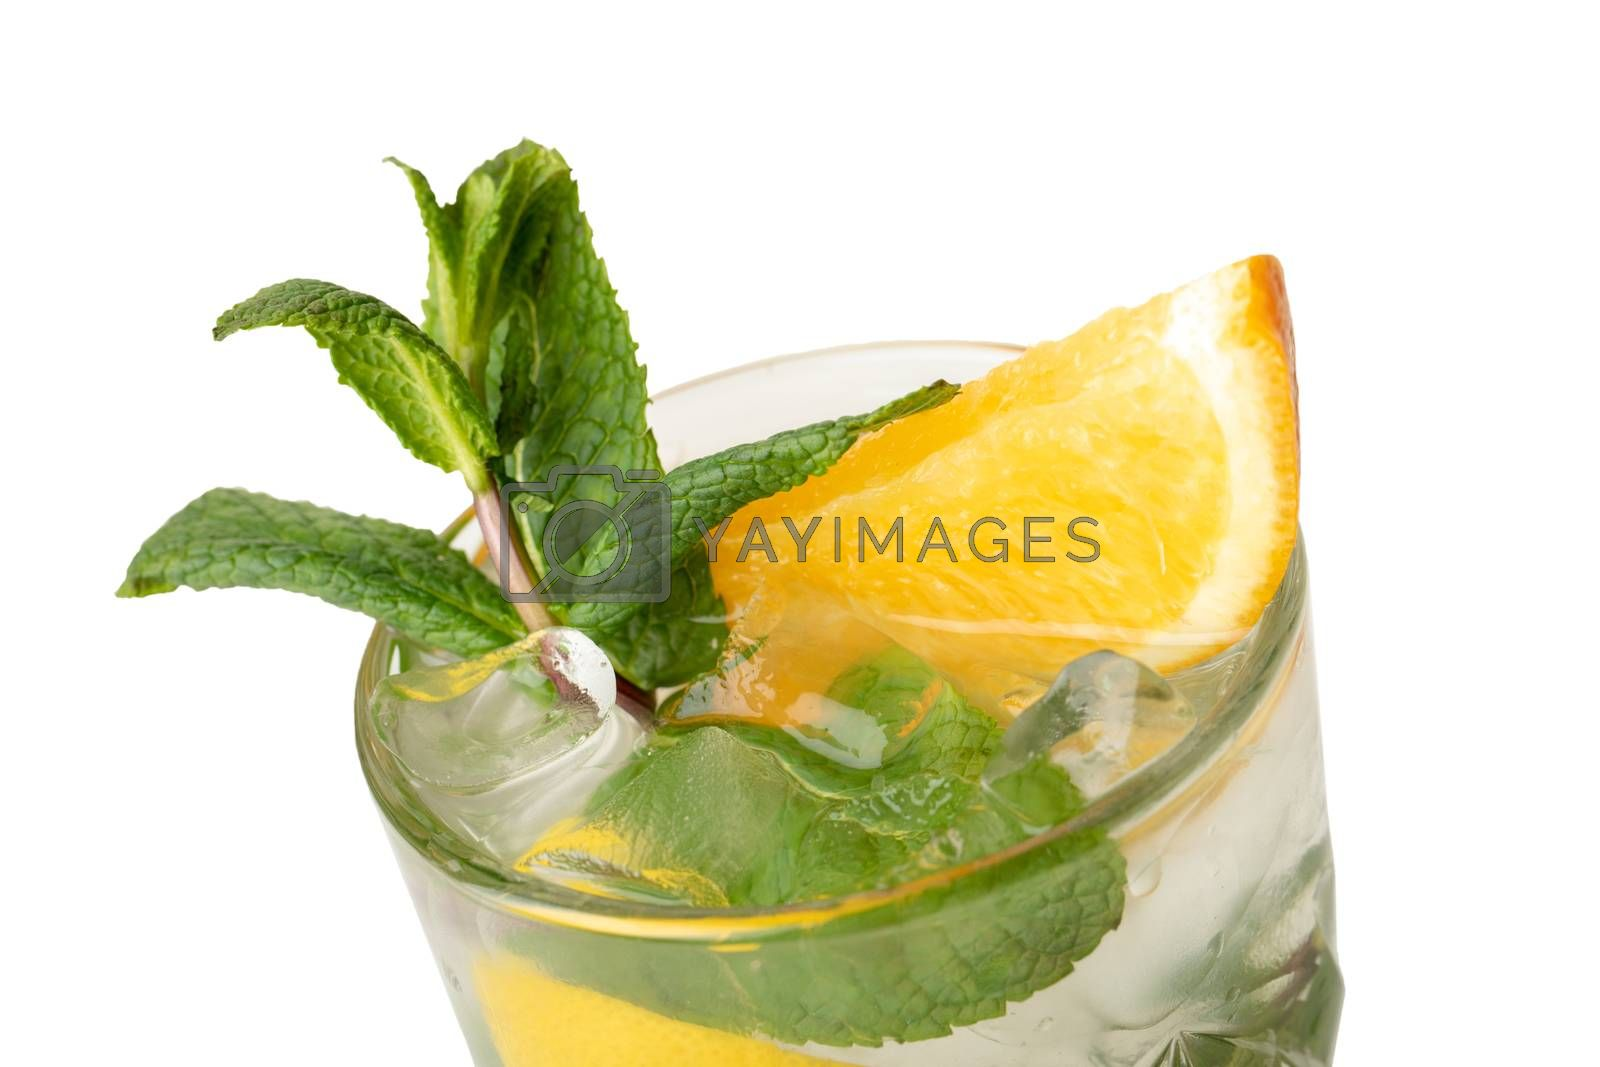 Royalty free image of Cocktail drink isolation on a white by SergeyAK